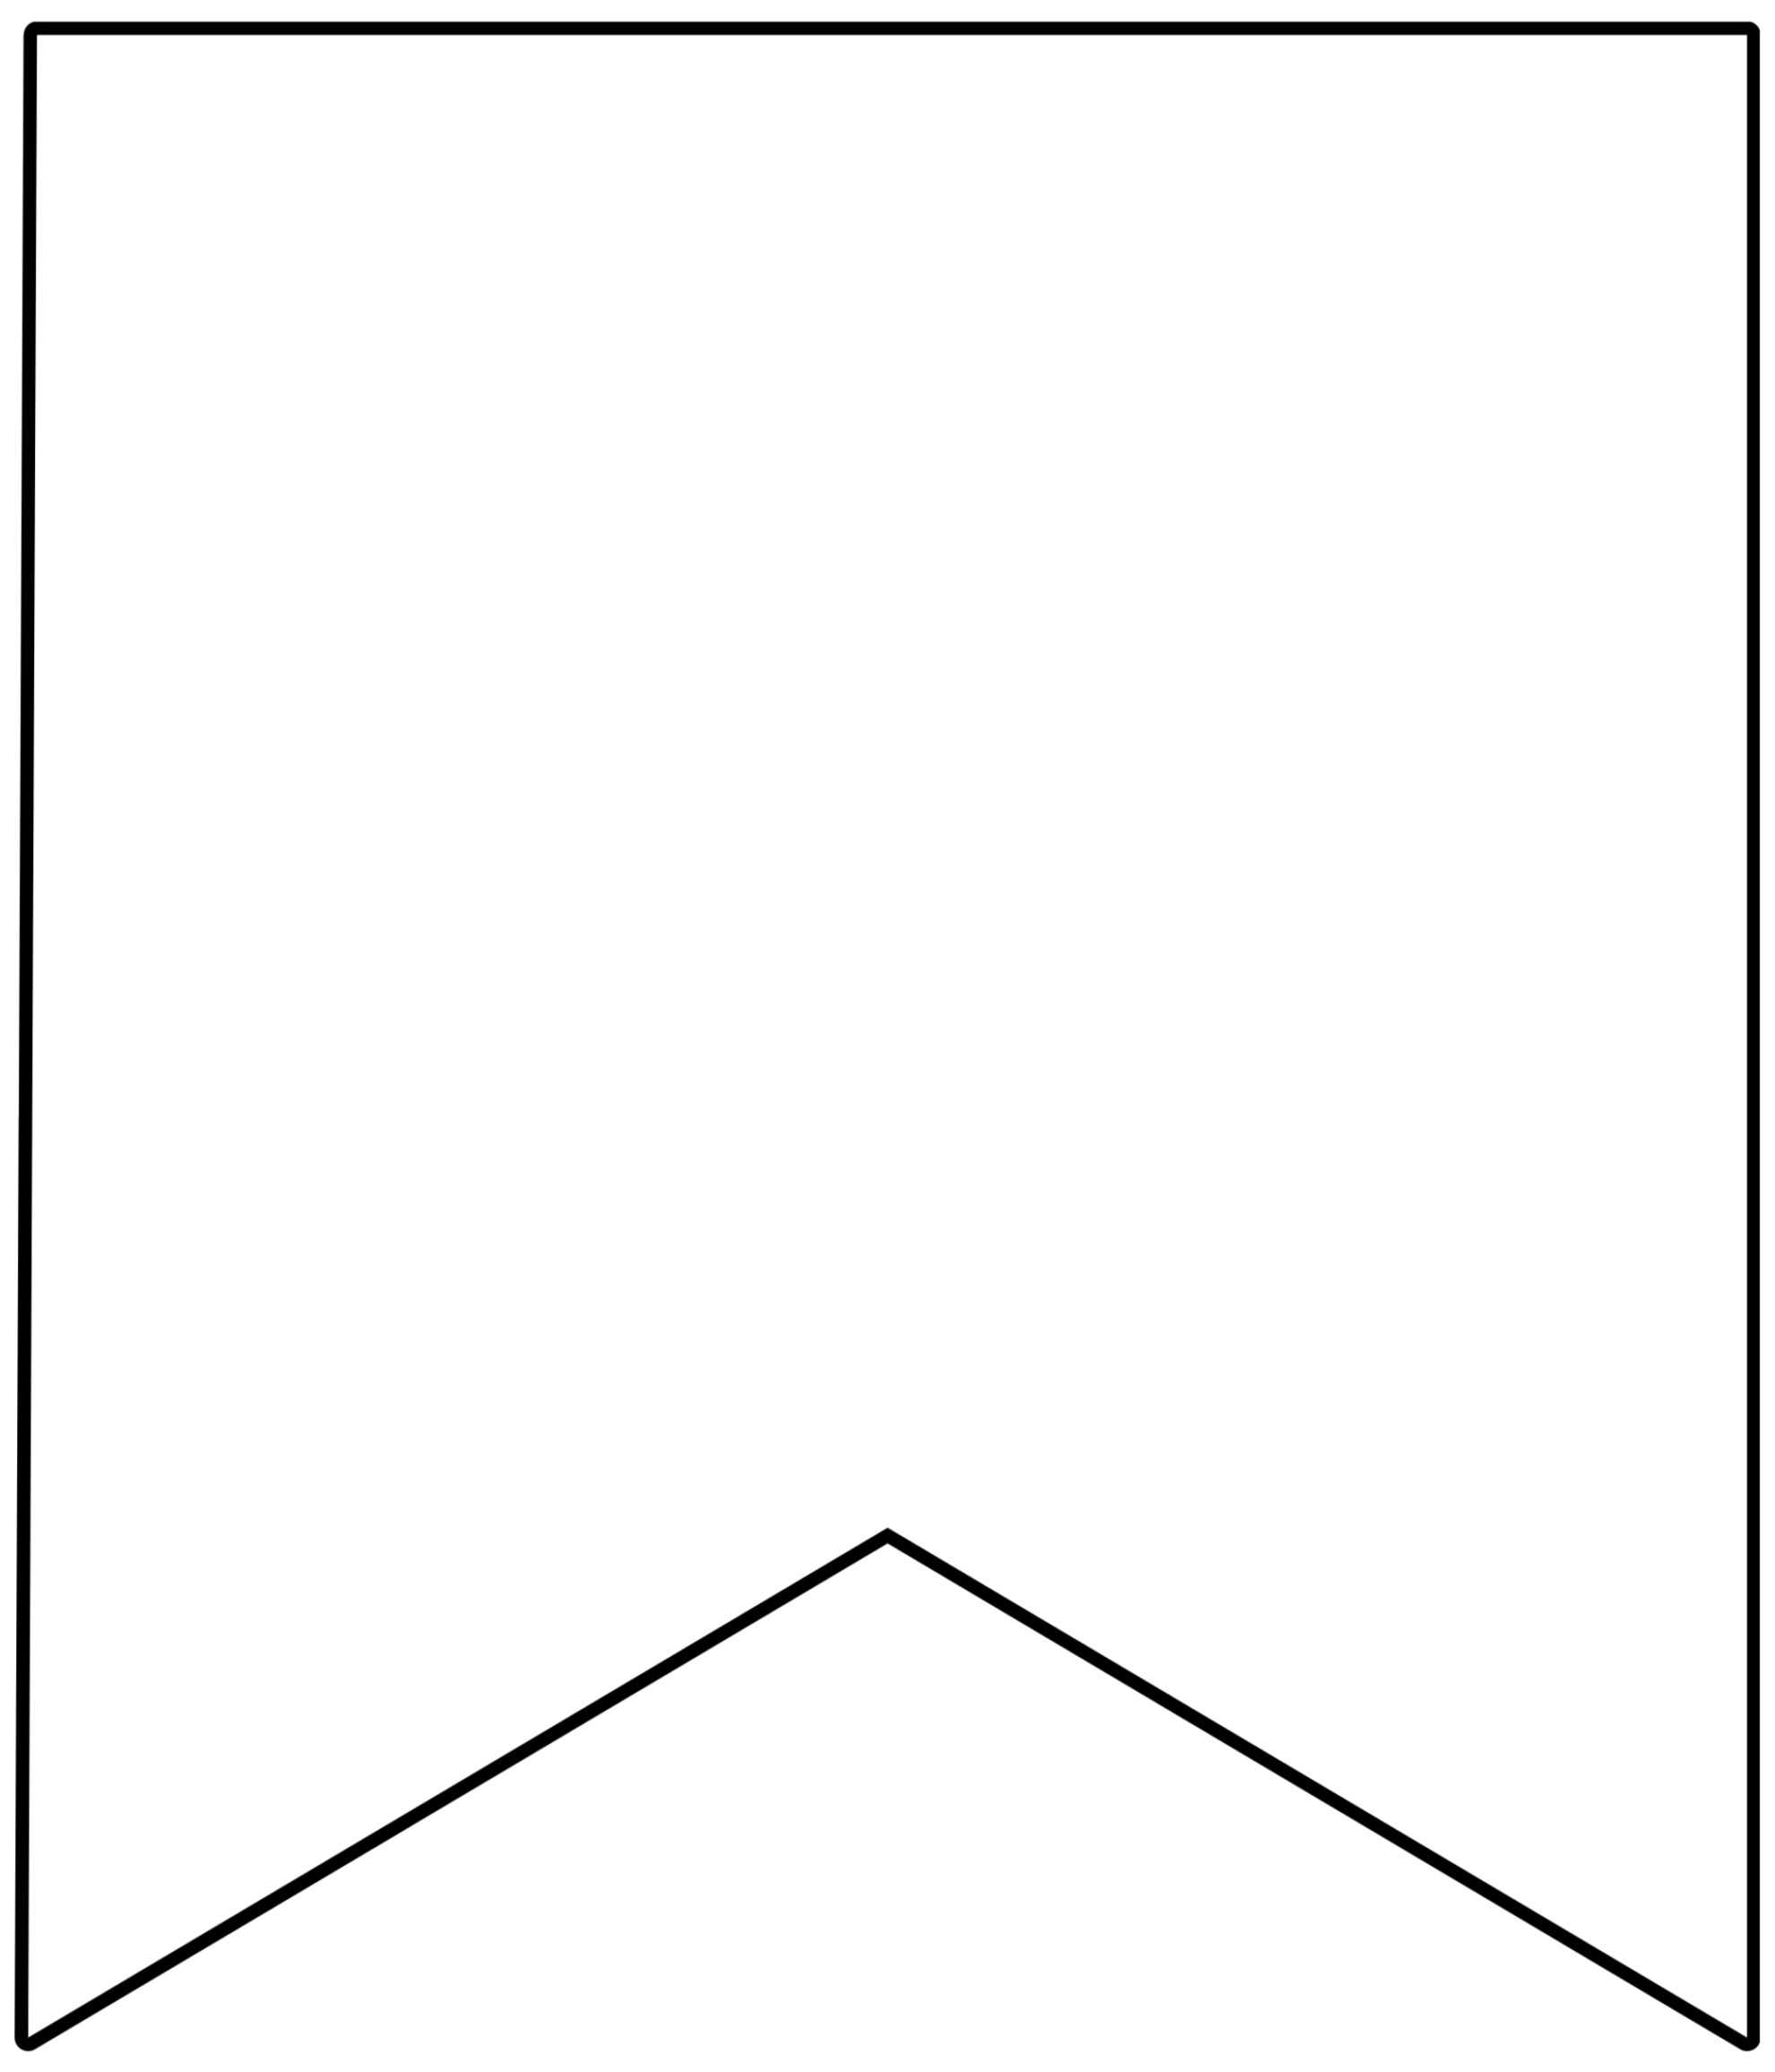 Free Printable Banner Templates {Blank Banners} - Paper Intended For Homemade Banner Template